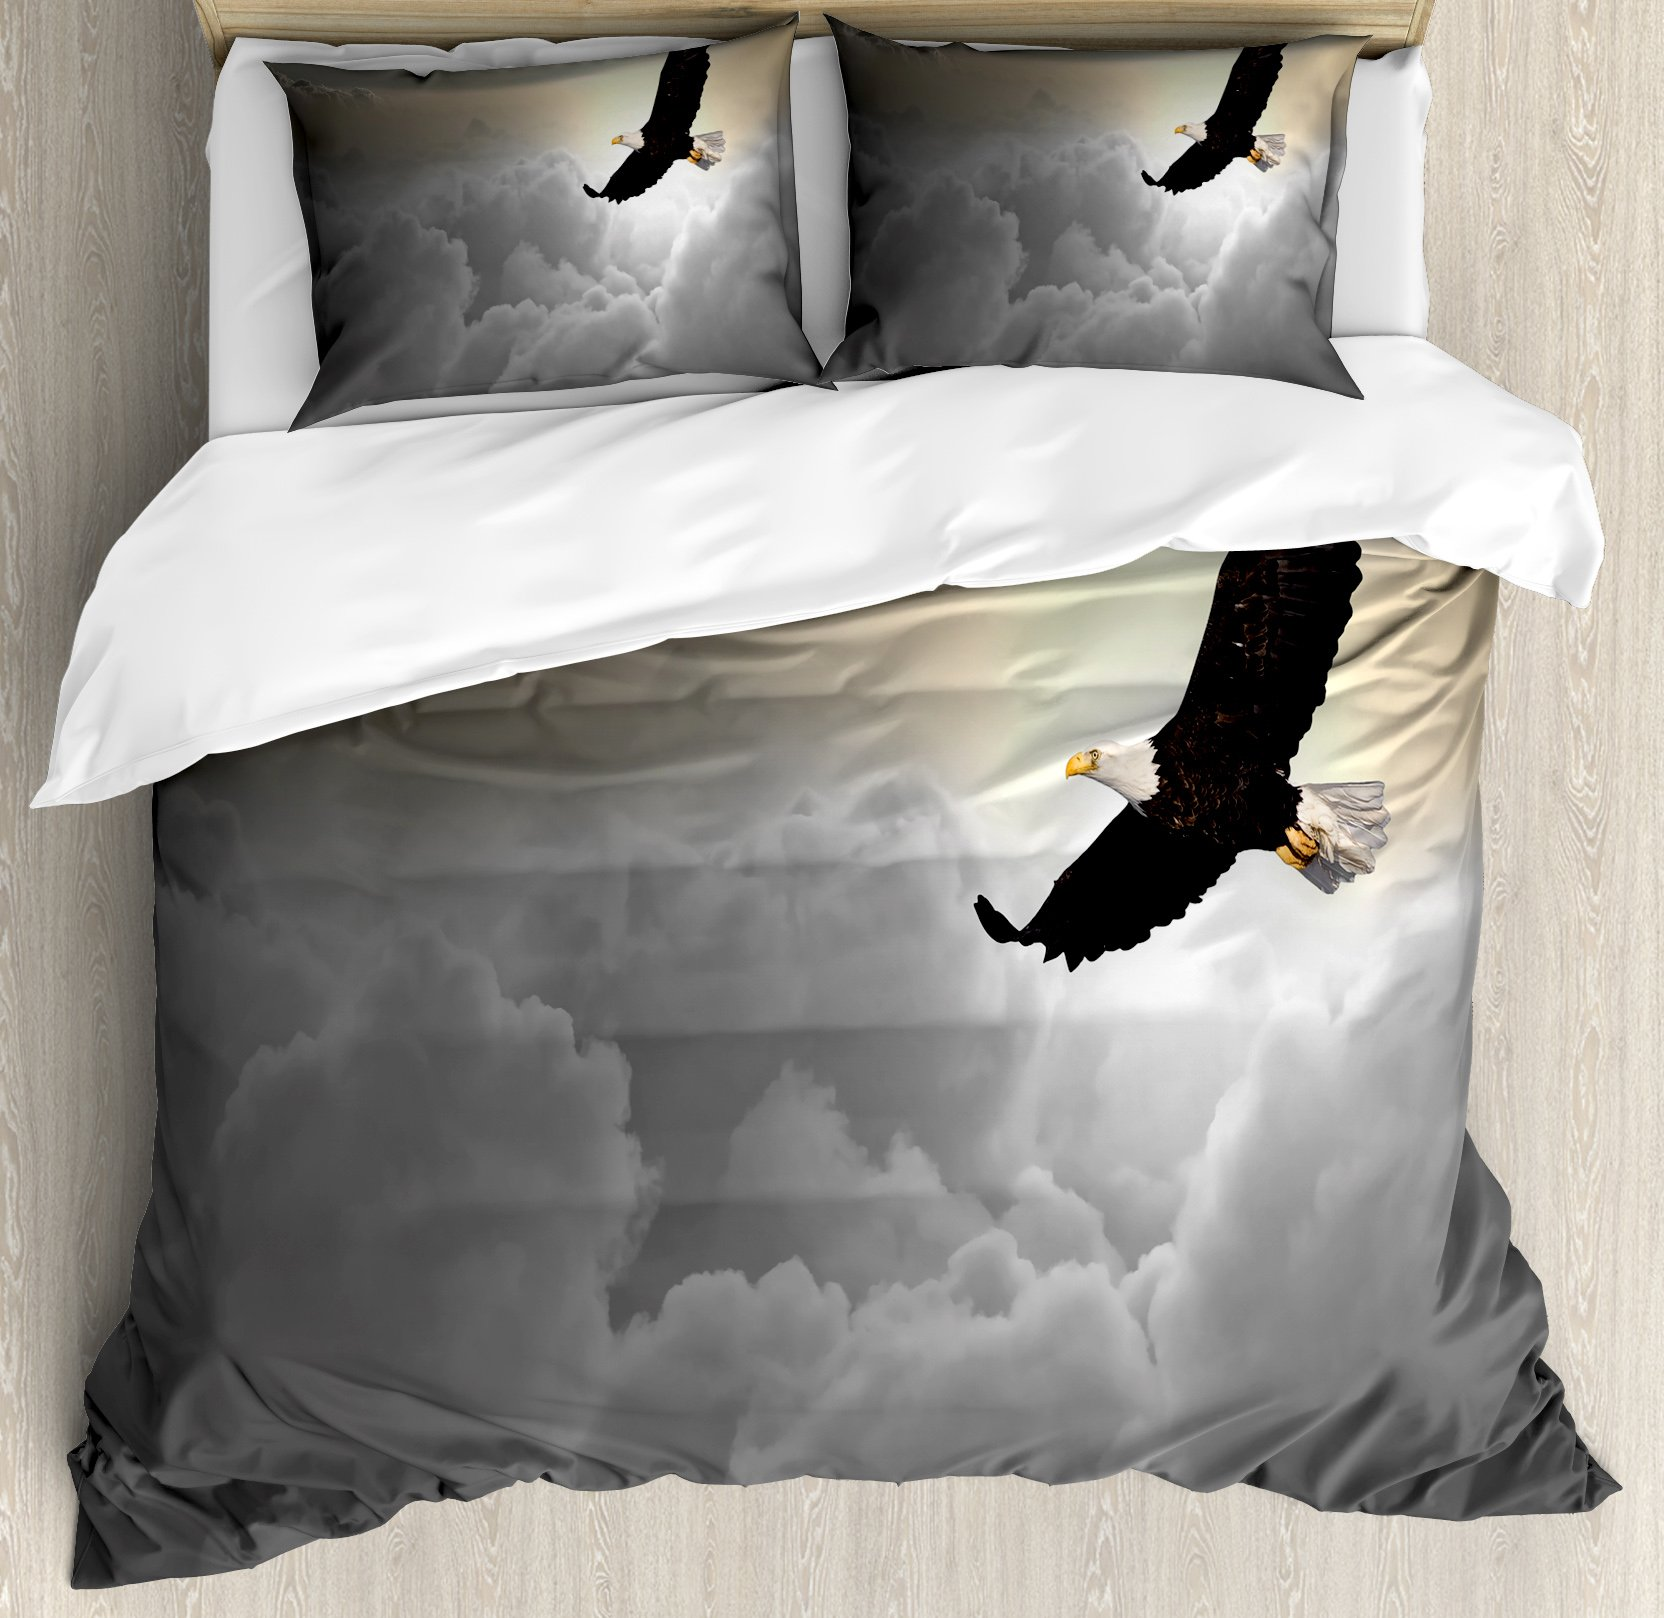 Eagle Duvet Cover Set King Size by Ambesonne, Majestic Creature Flying above Clouds Liberty Democracy and Freedom, Decorative 3 Piece Bedding Set with 2 Pillow Shams, Pale Grey Pale Yellow Black